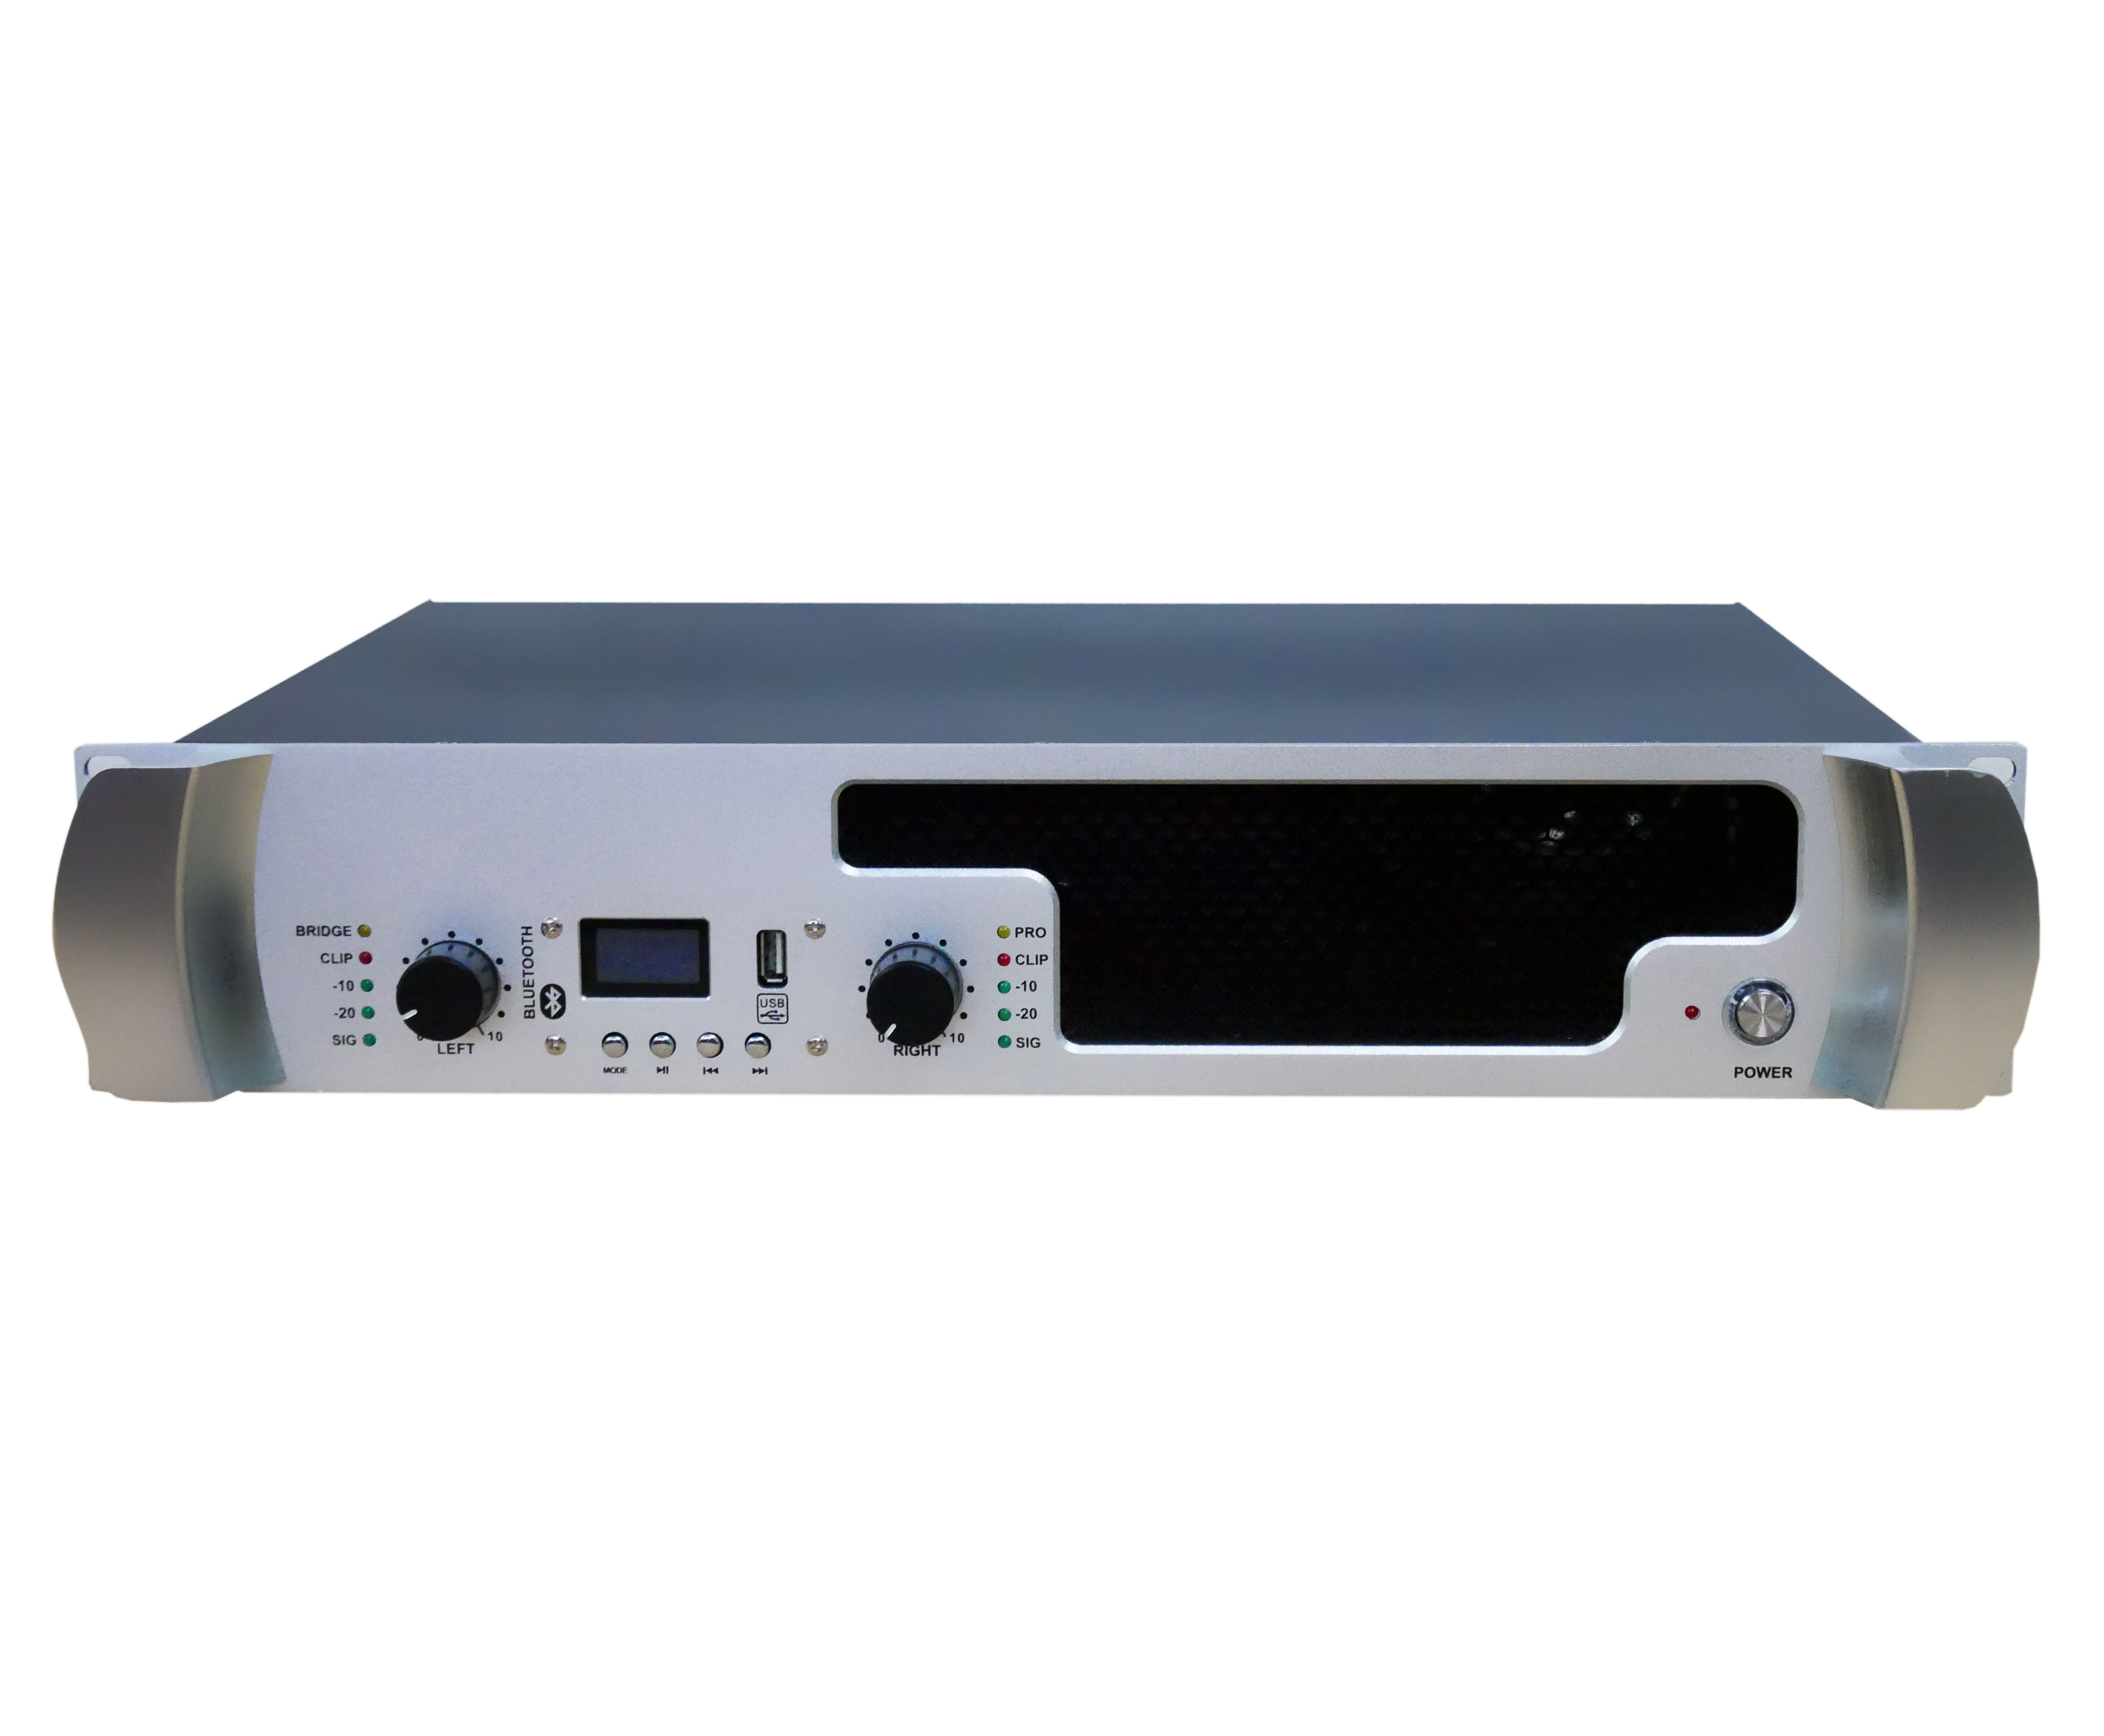 Newly designed high power output professional 2 channel amplifier with USB and BT